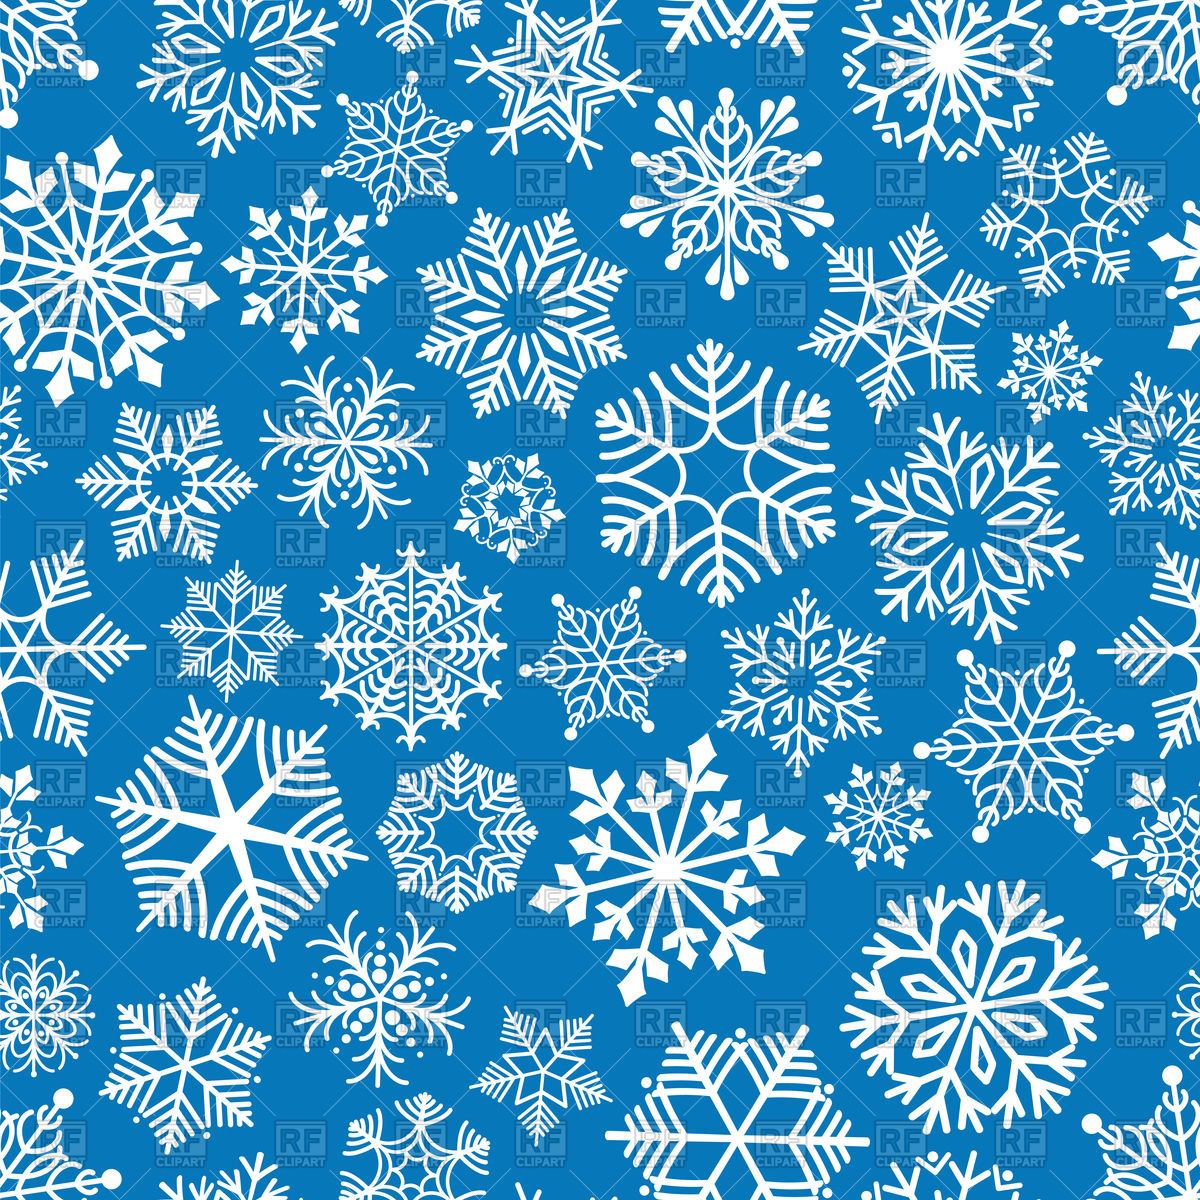 1200x1200 Snowflakes Seamless Pattern Vector Image Vector Artwork Of